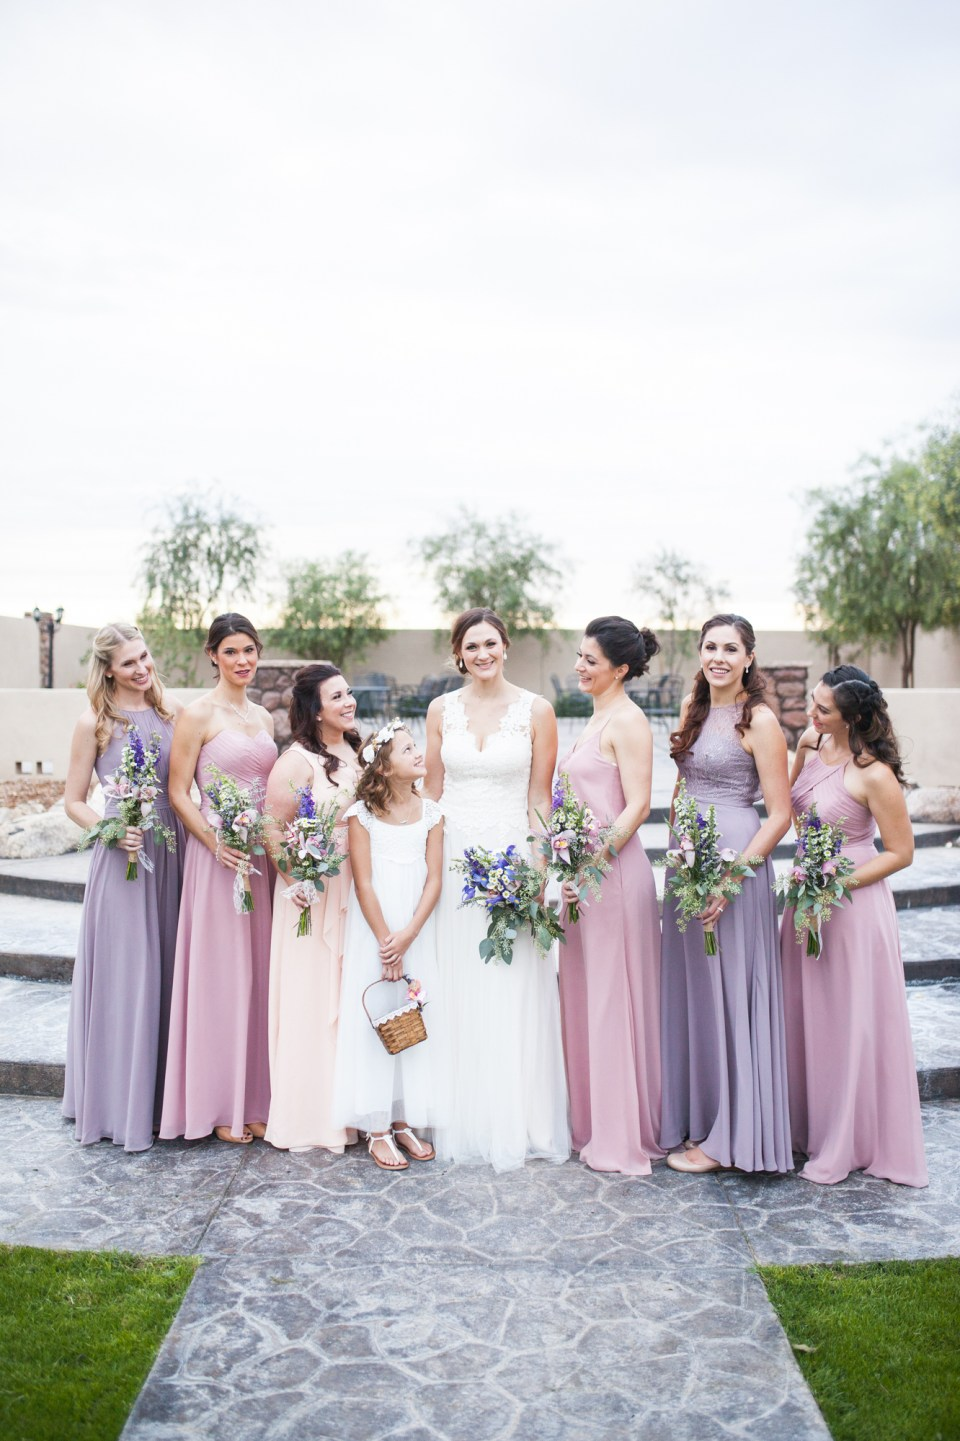 Bride with bridesmaids in pink and purple dresses